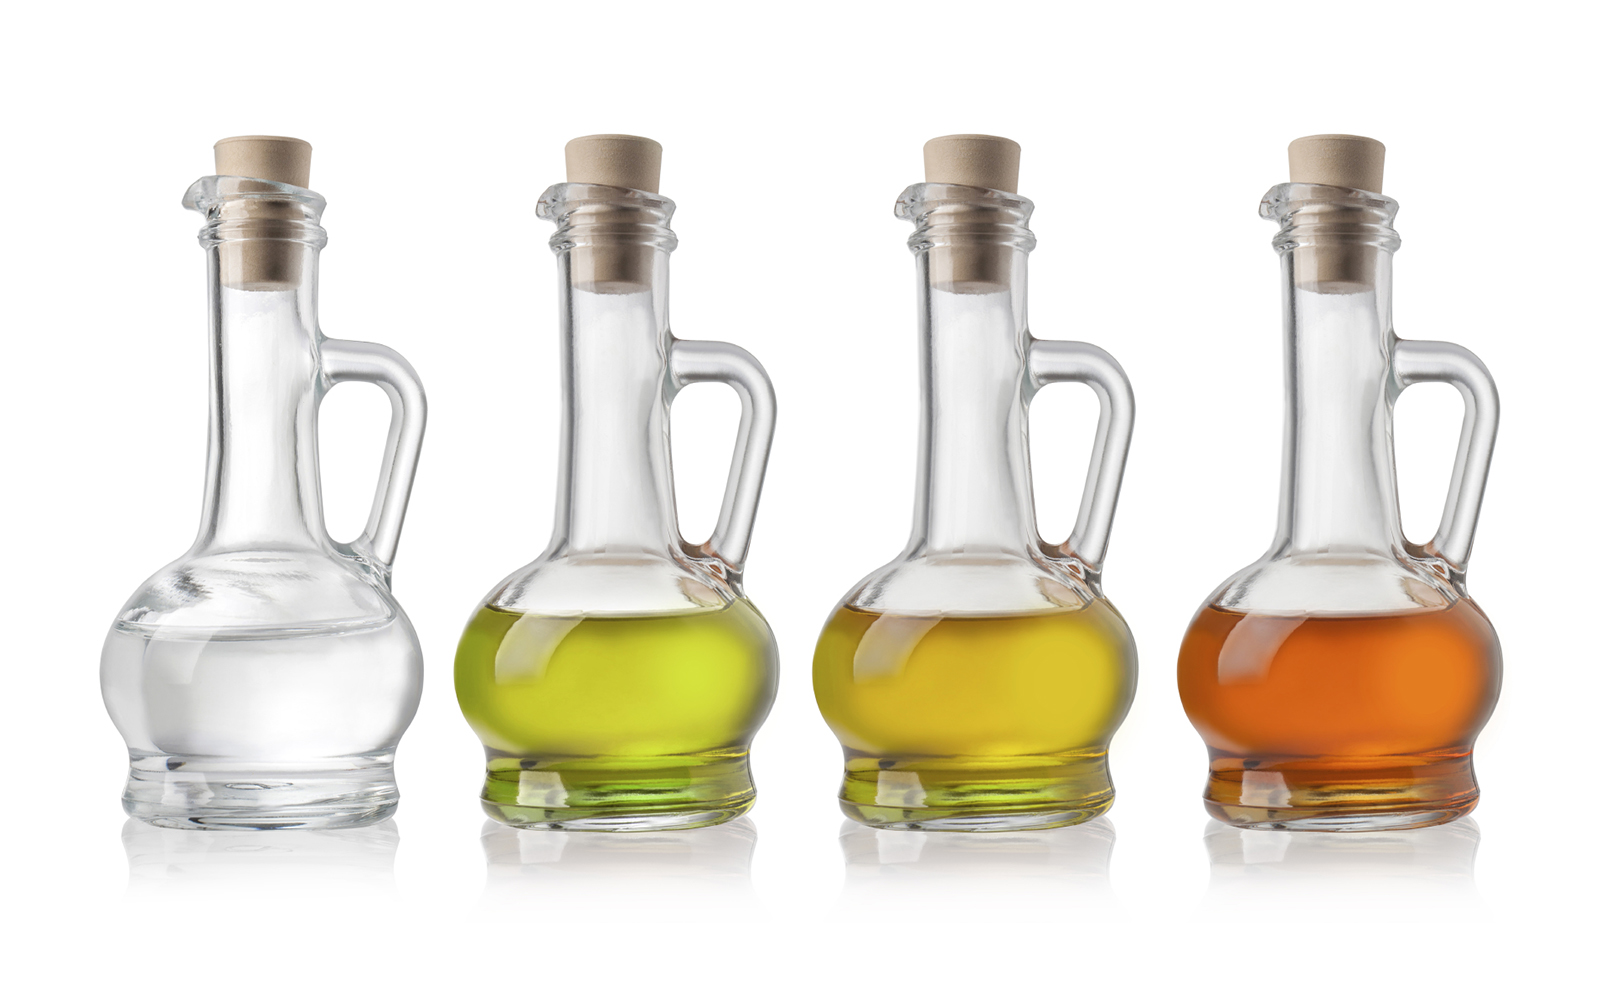 Vinegar comes with impressive health benefits. Here are five reasons to use more of it.